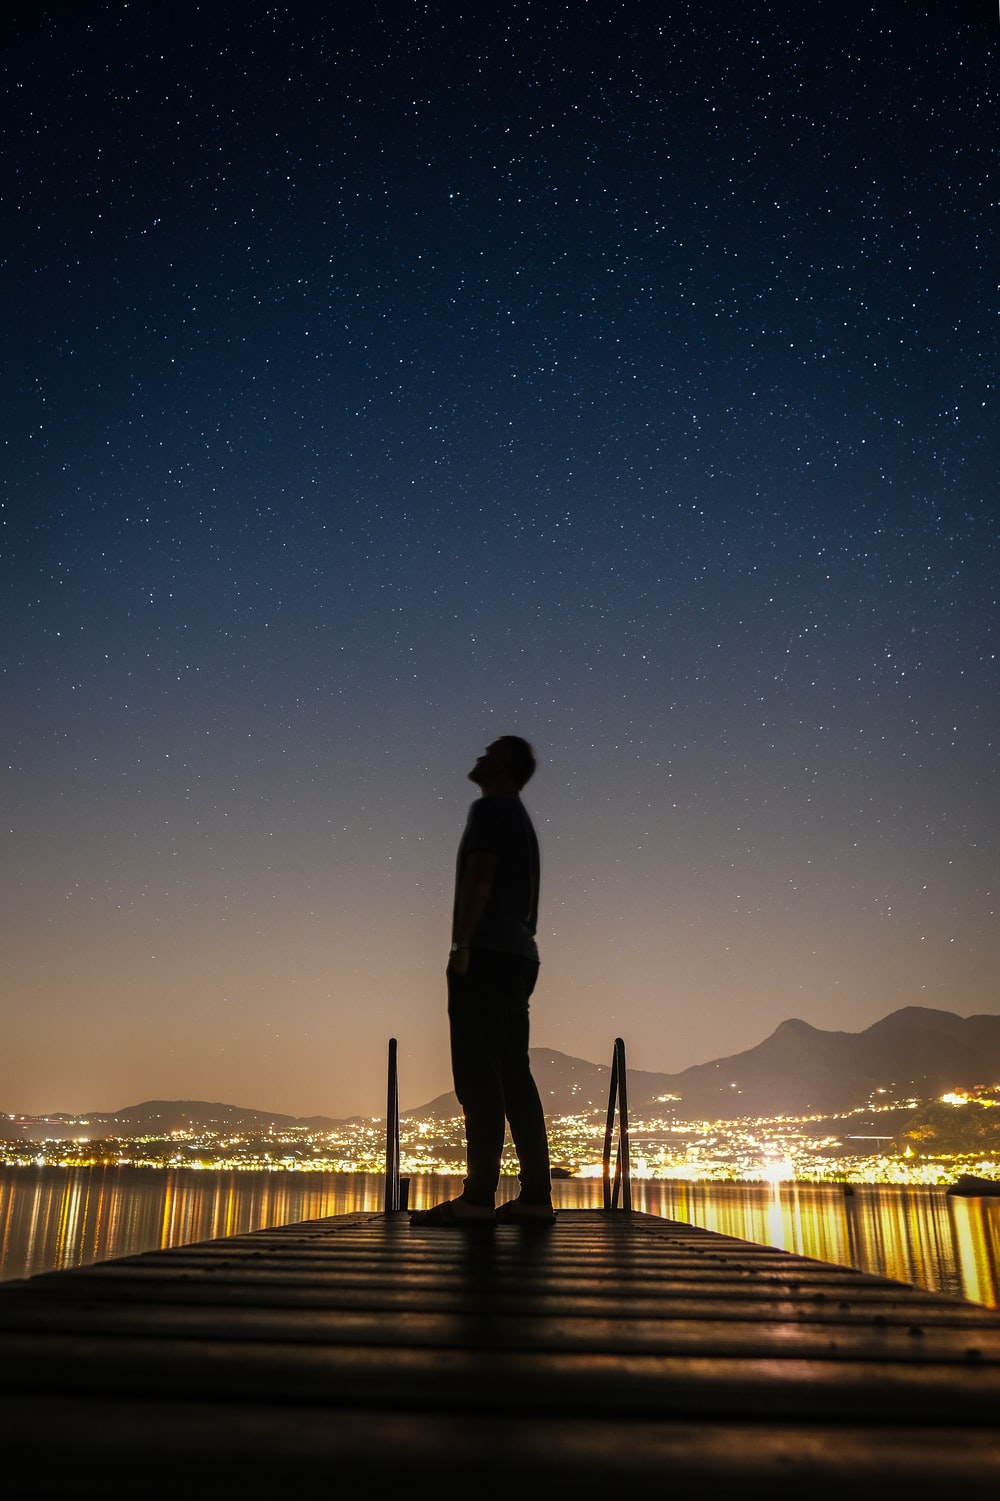 silhouette of man standing on dock during night time